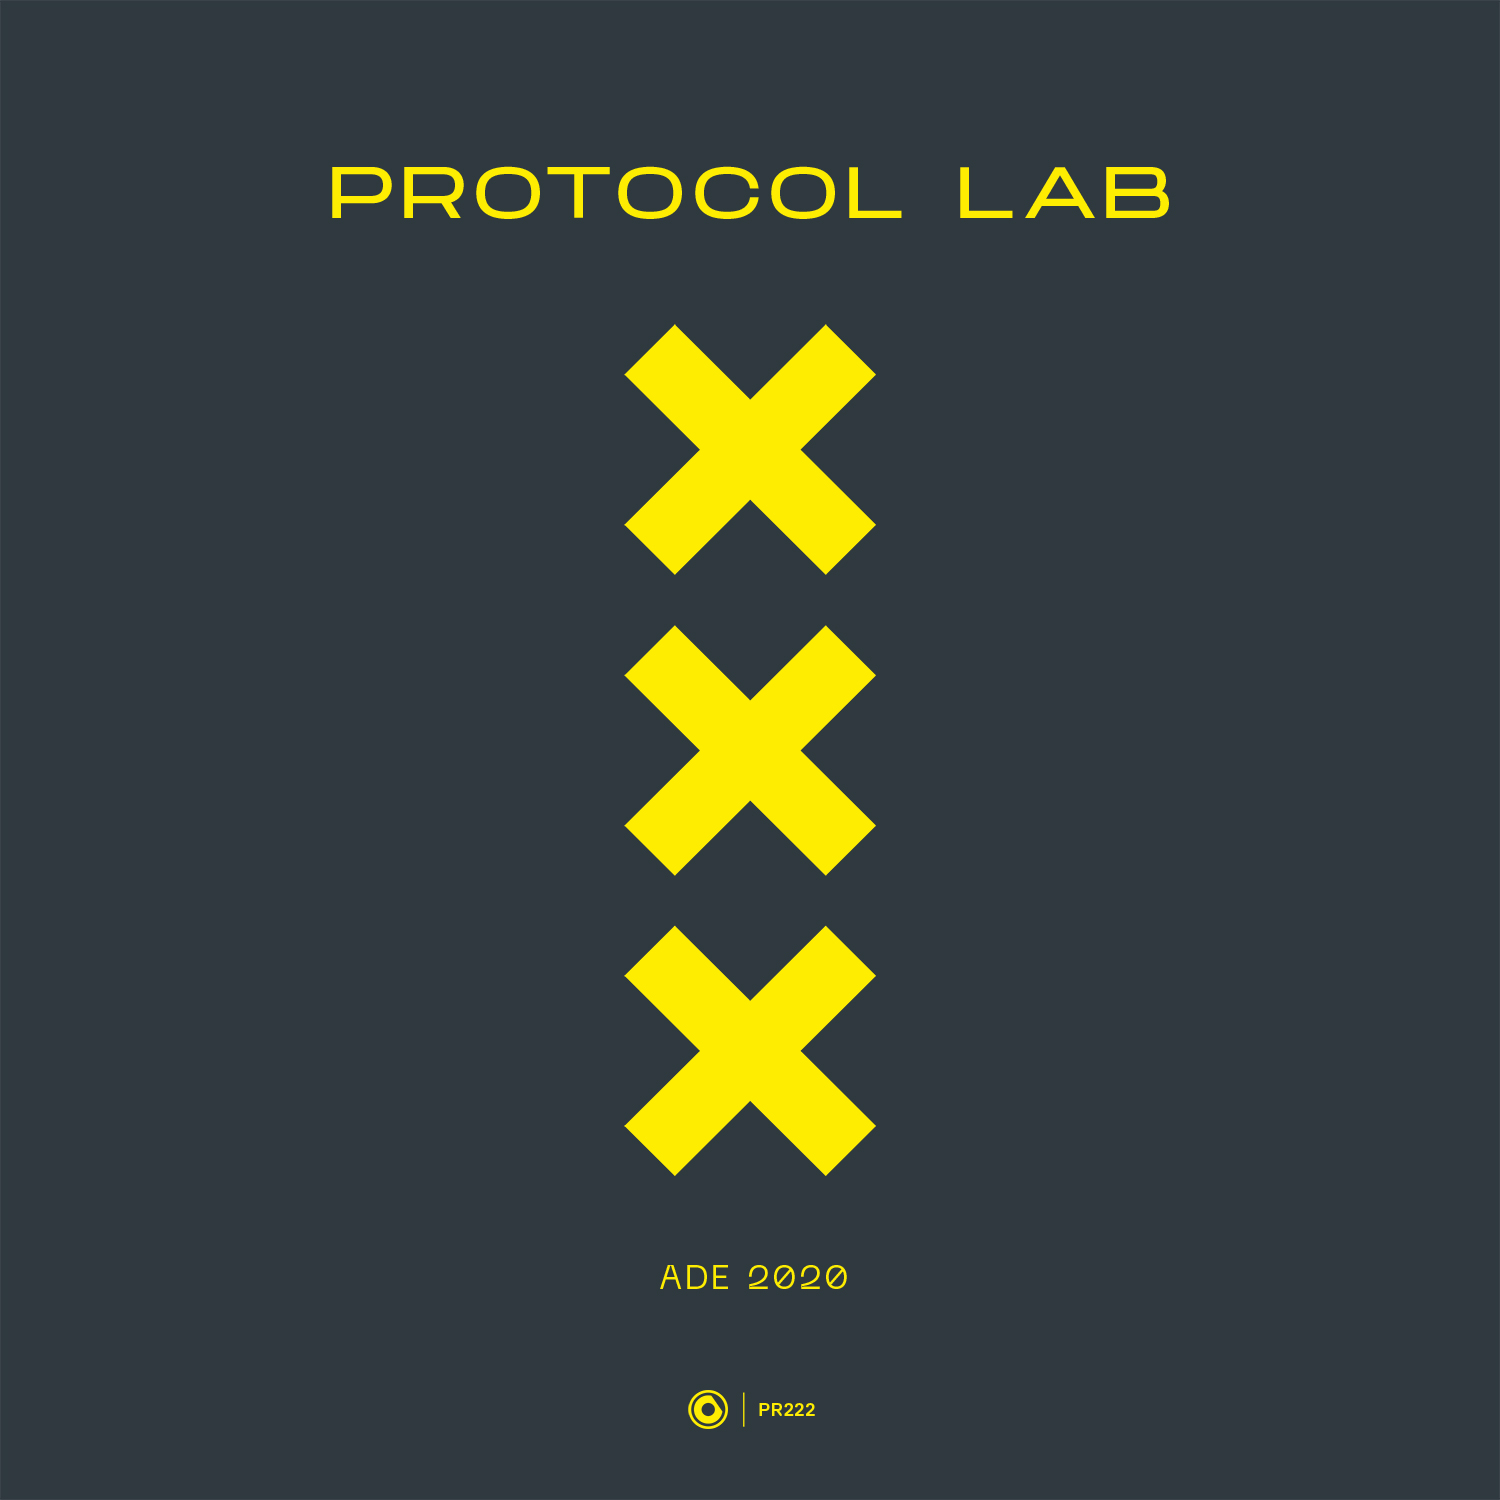 """Protocol Releases Genre-Spanning Annual """"Protocol Lab – ADE 2020"""" EP"""